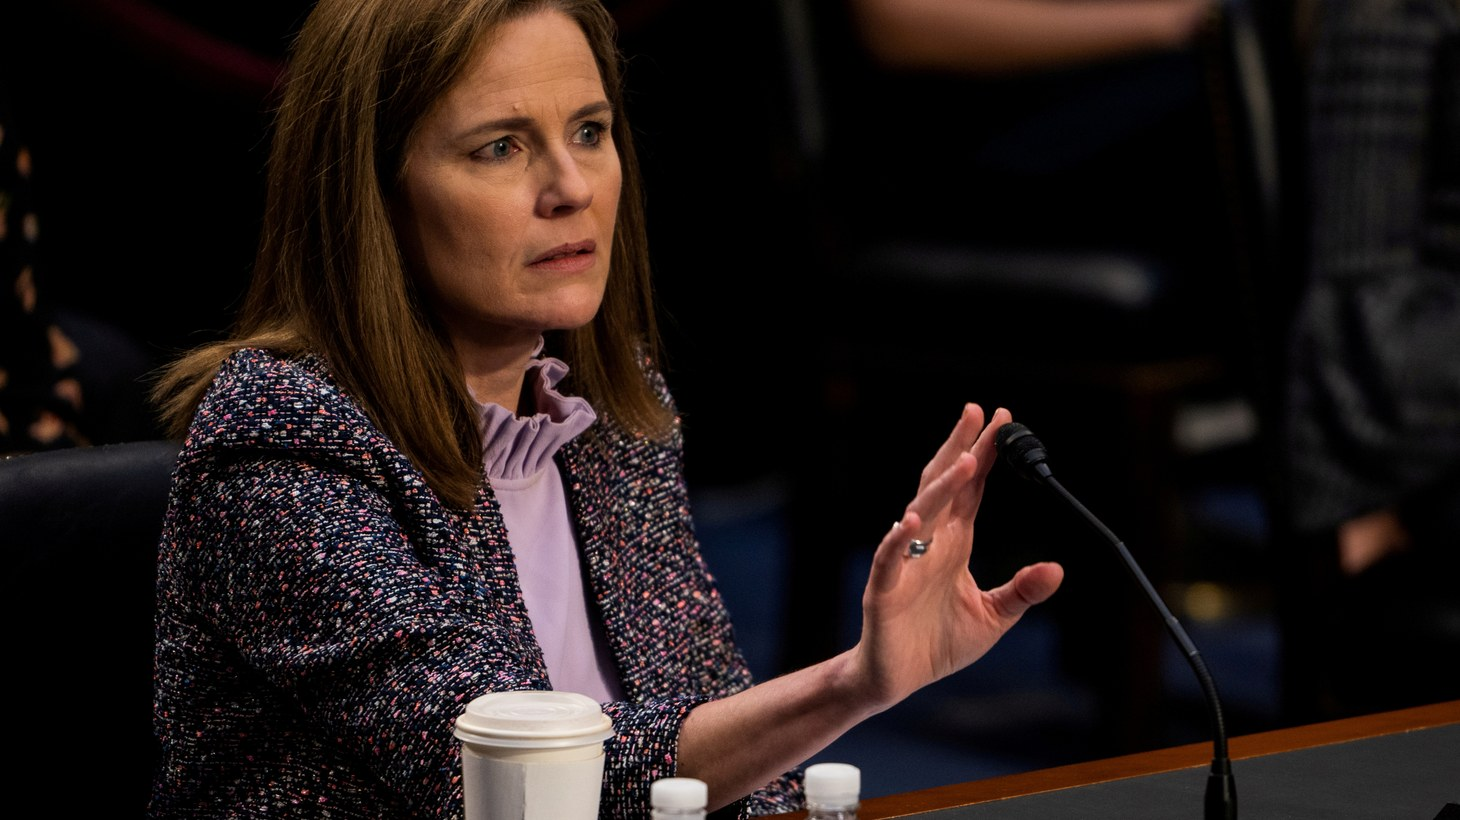 Judge Amy Coney Barrett during the third day of her Senate confirmation hearing to the Supreme Court on Capitol Hill in Washington, DC, U.S., October 14, 2020.